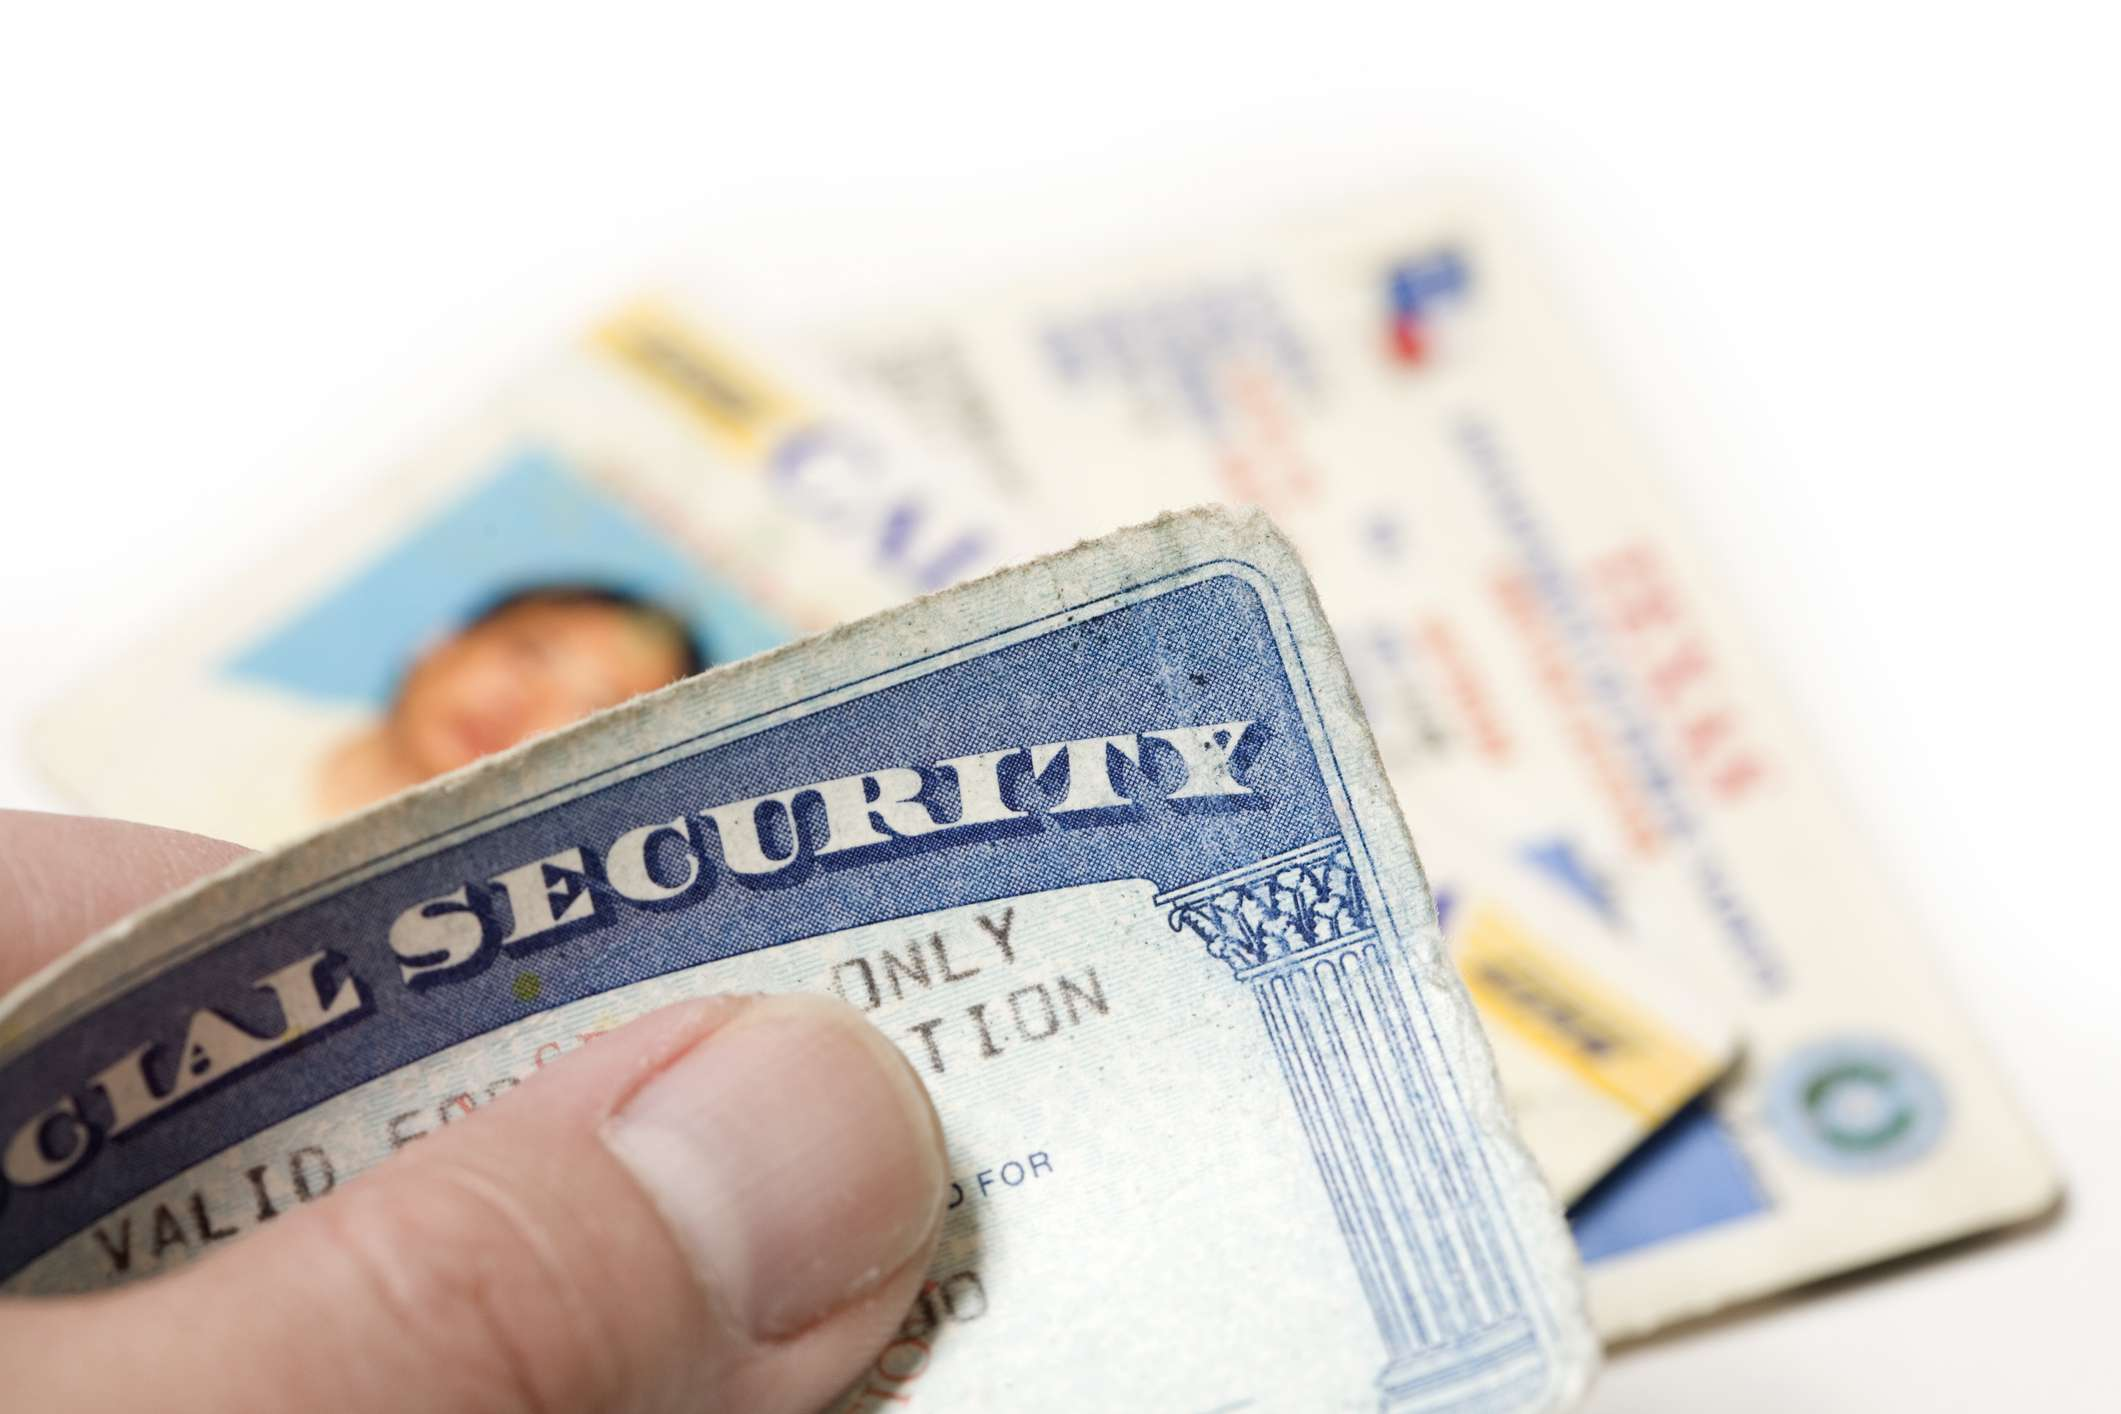 studio shot of hand holding social security card